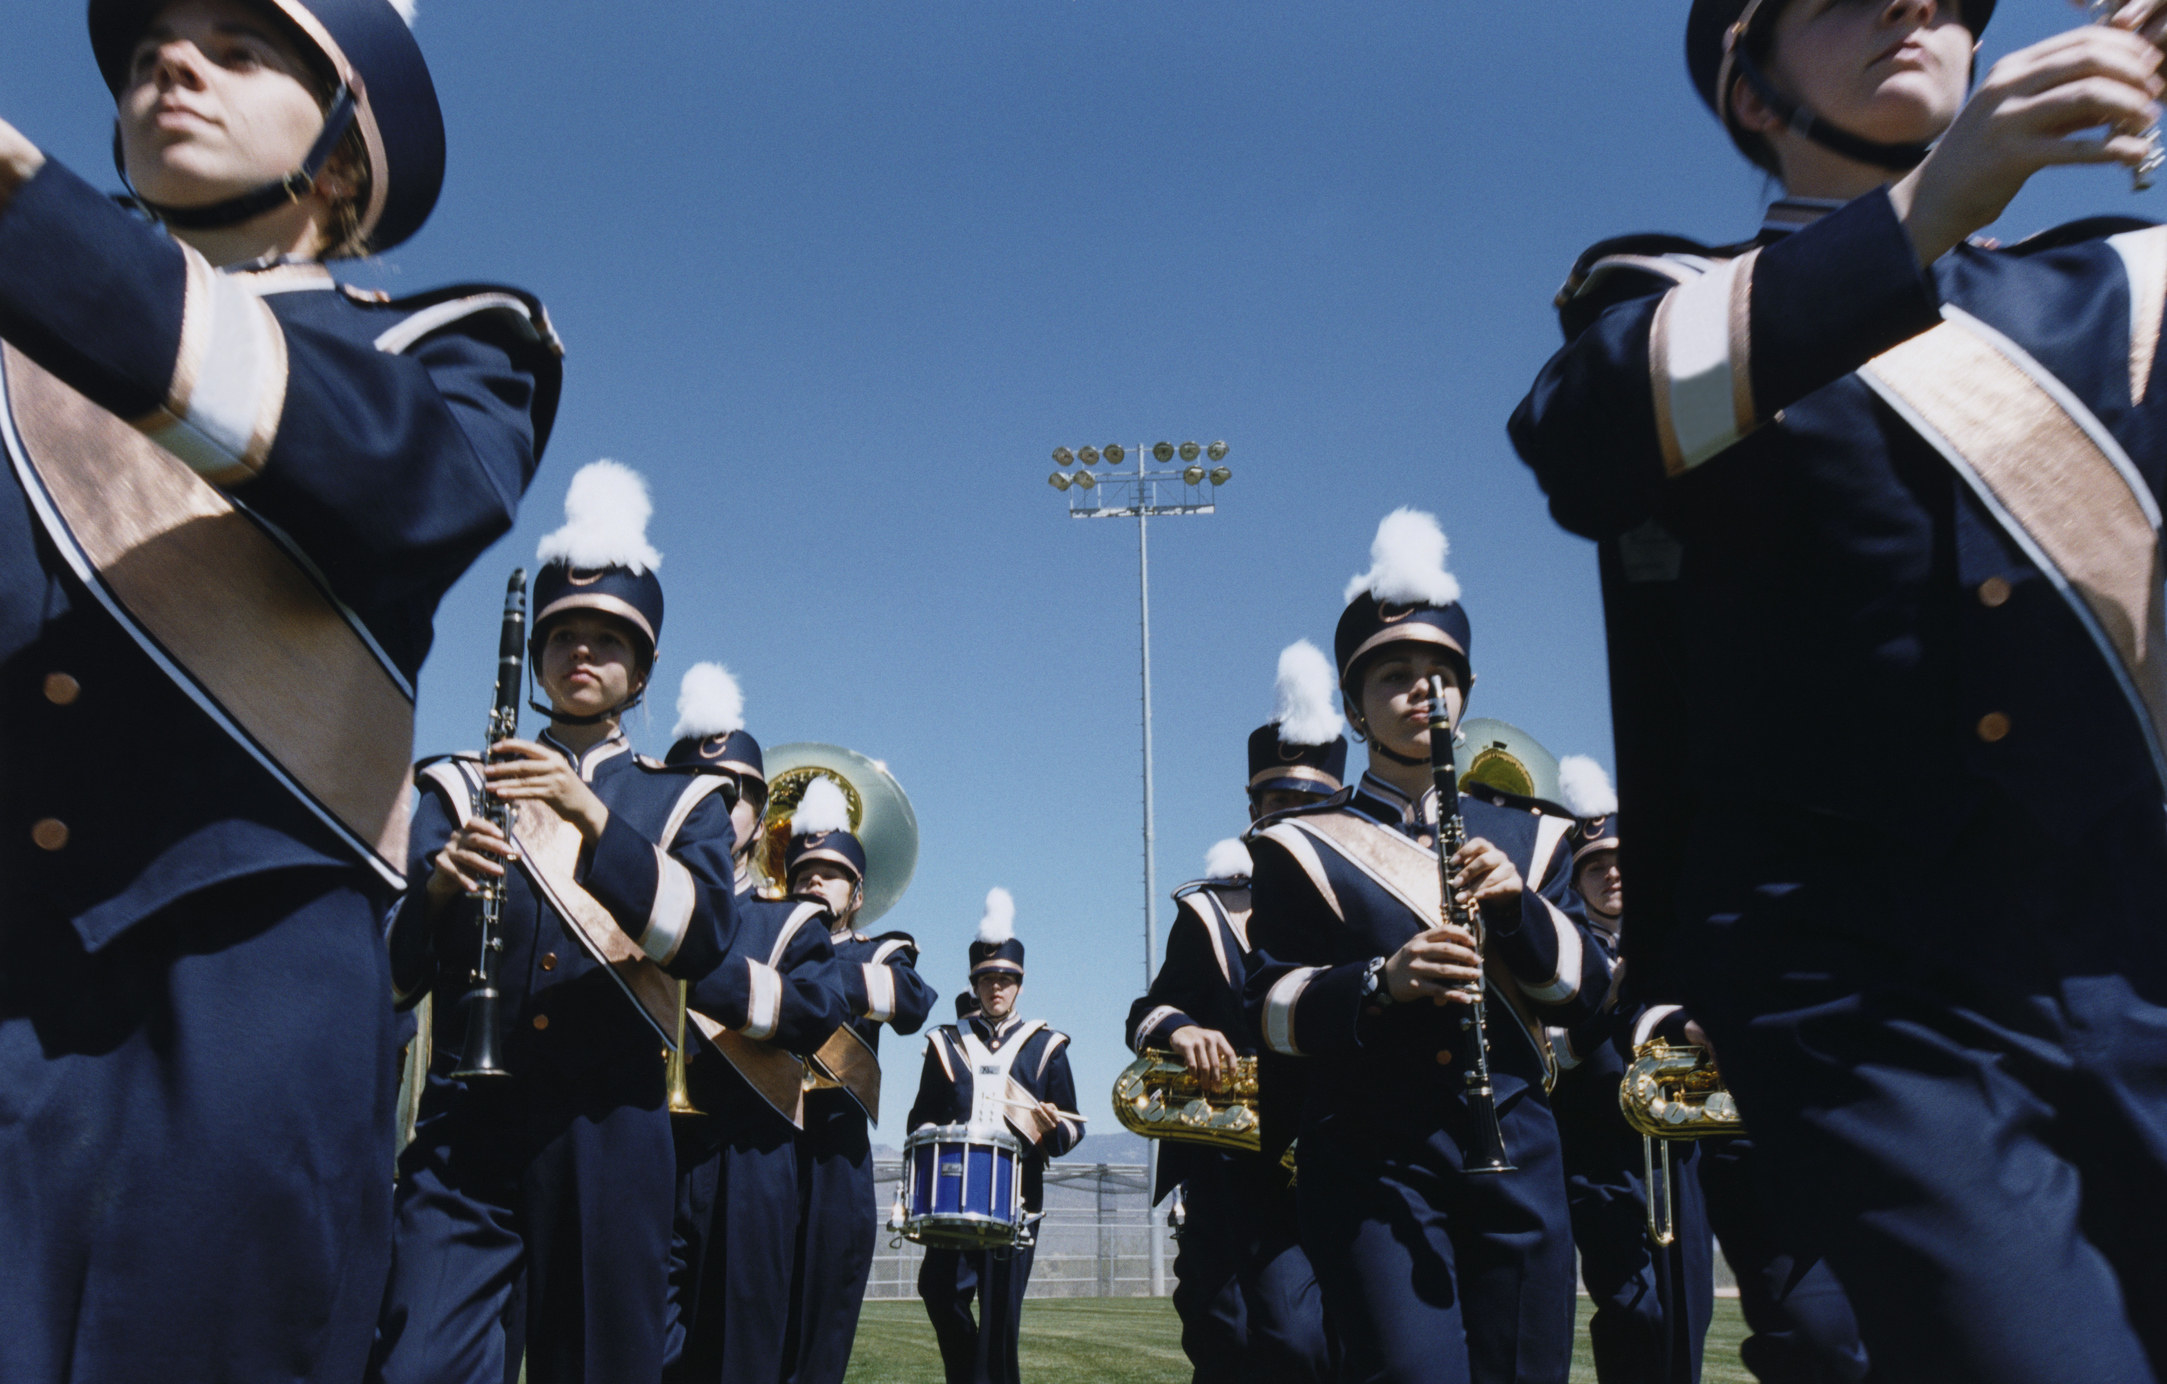 a high school marching band